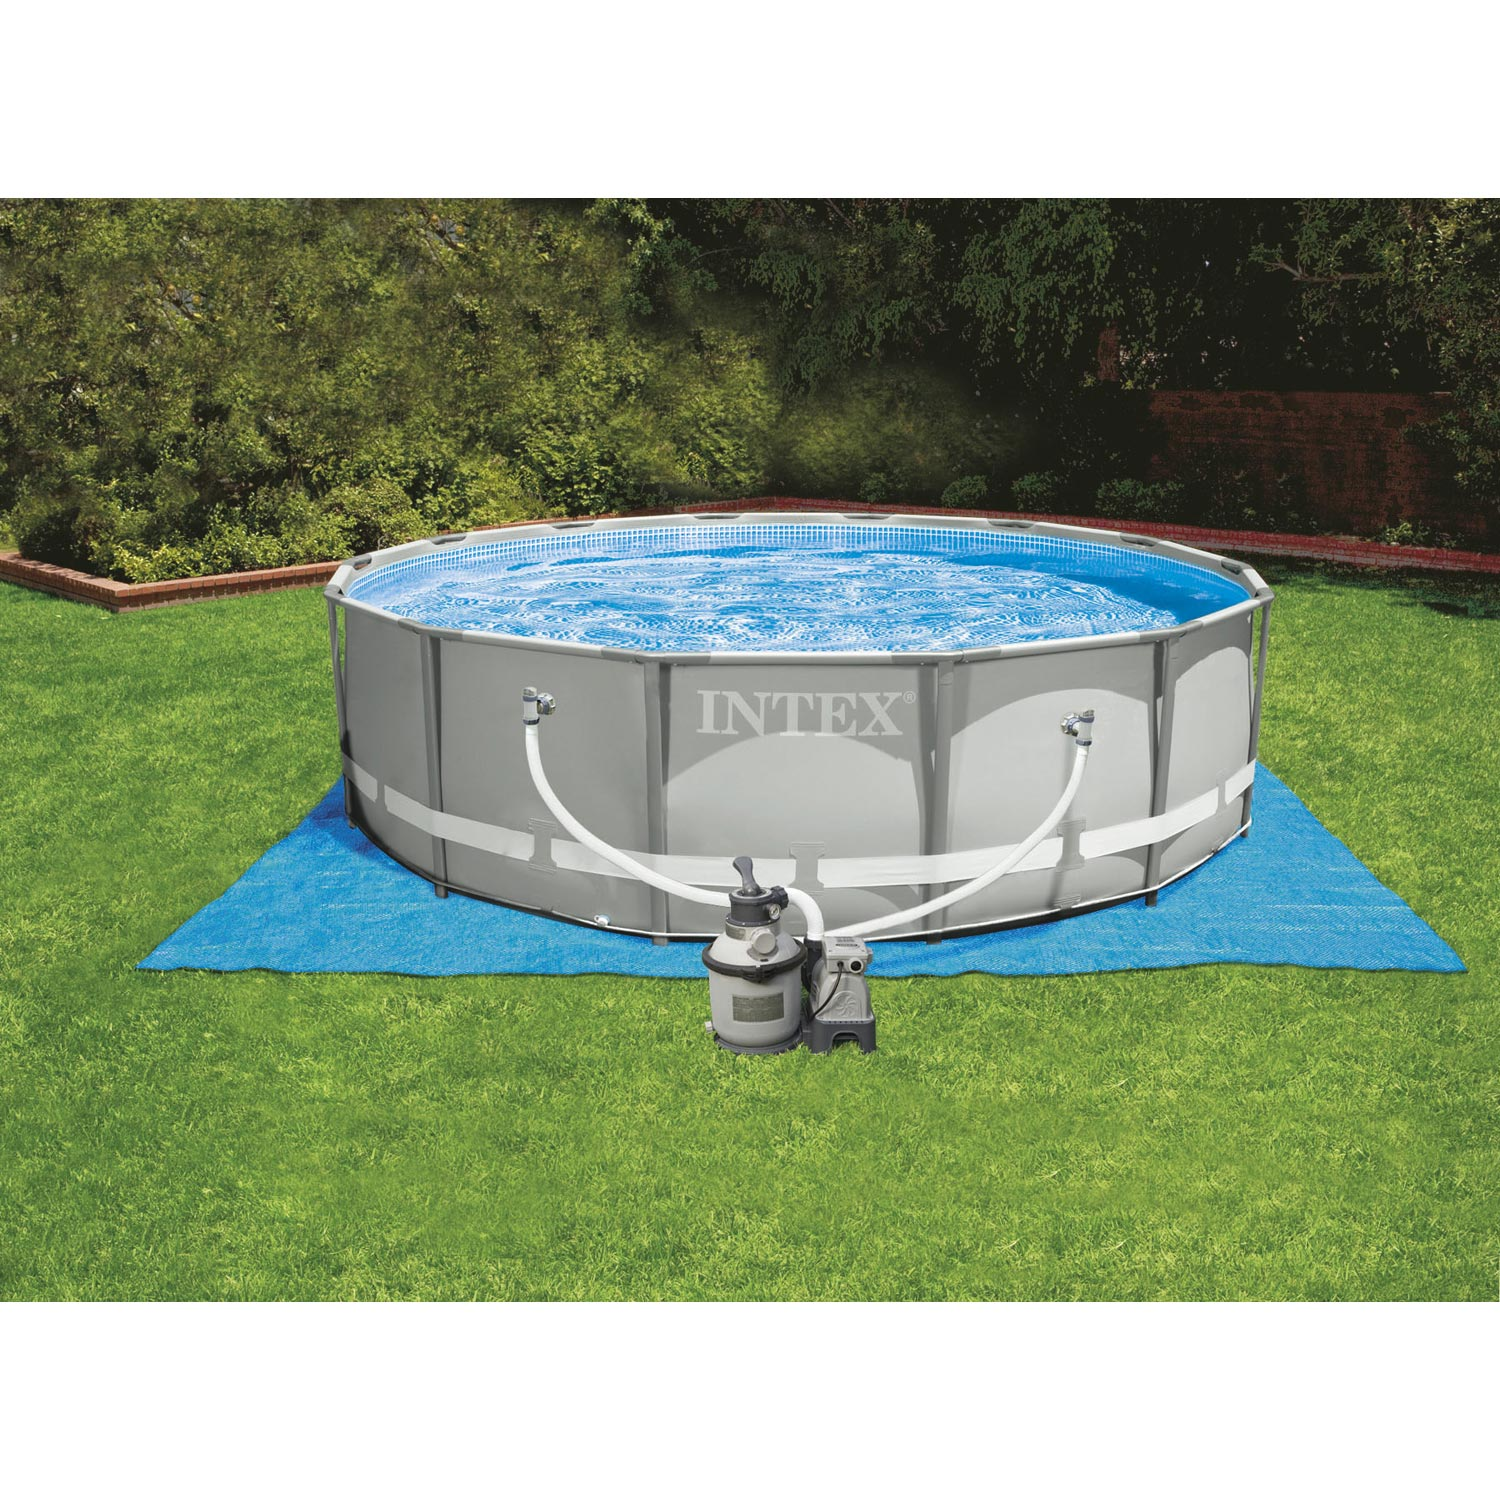 Piscine hors sol autoportante tubulaire ultraframe intex for Piscine hors sol qui explose